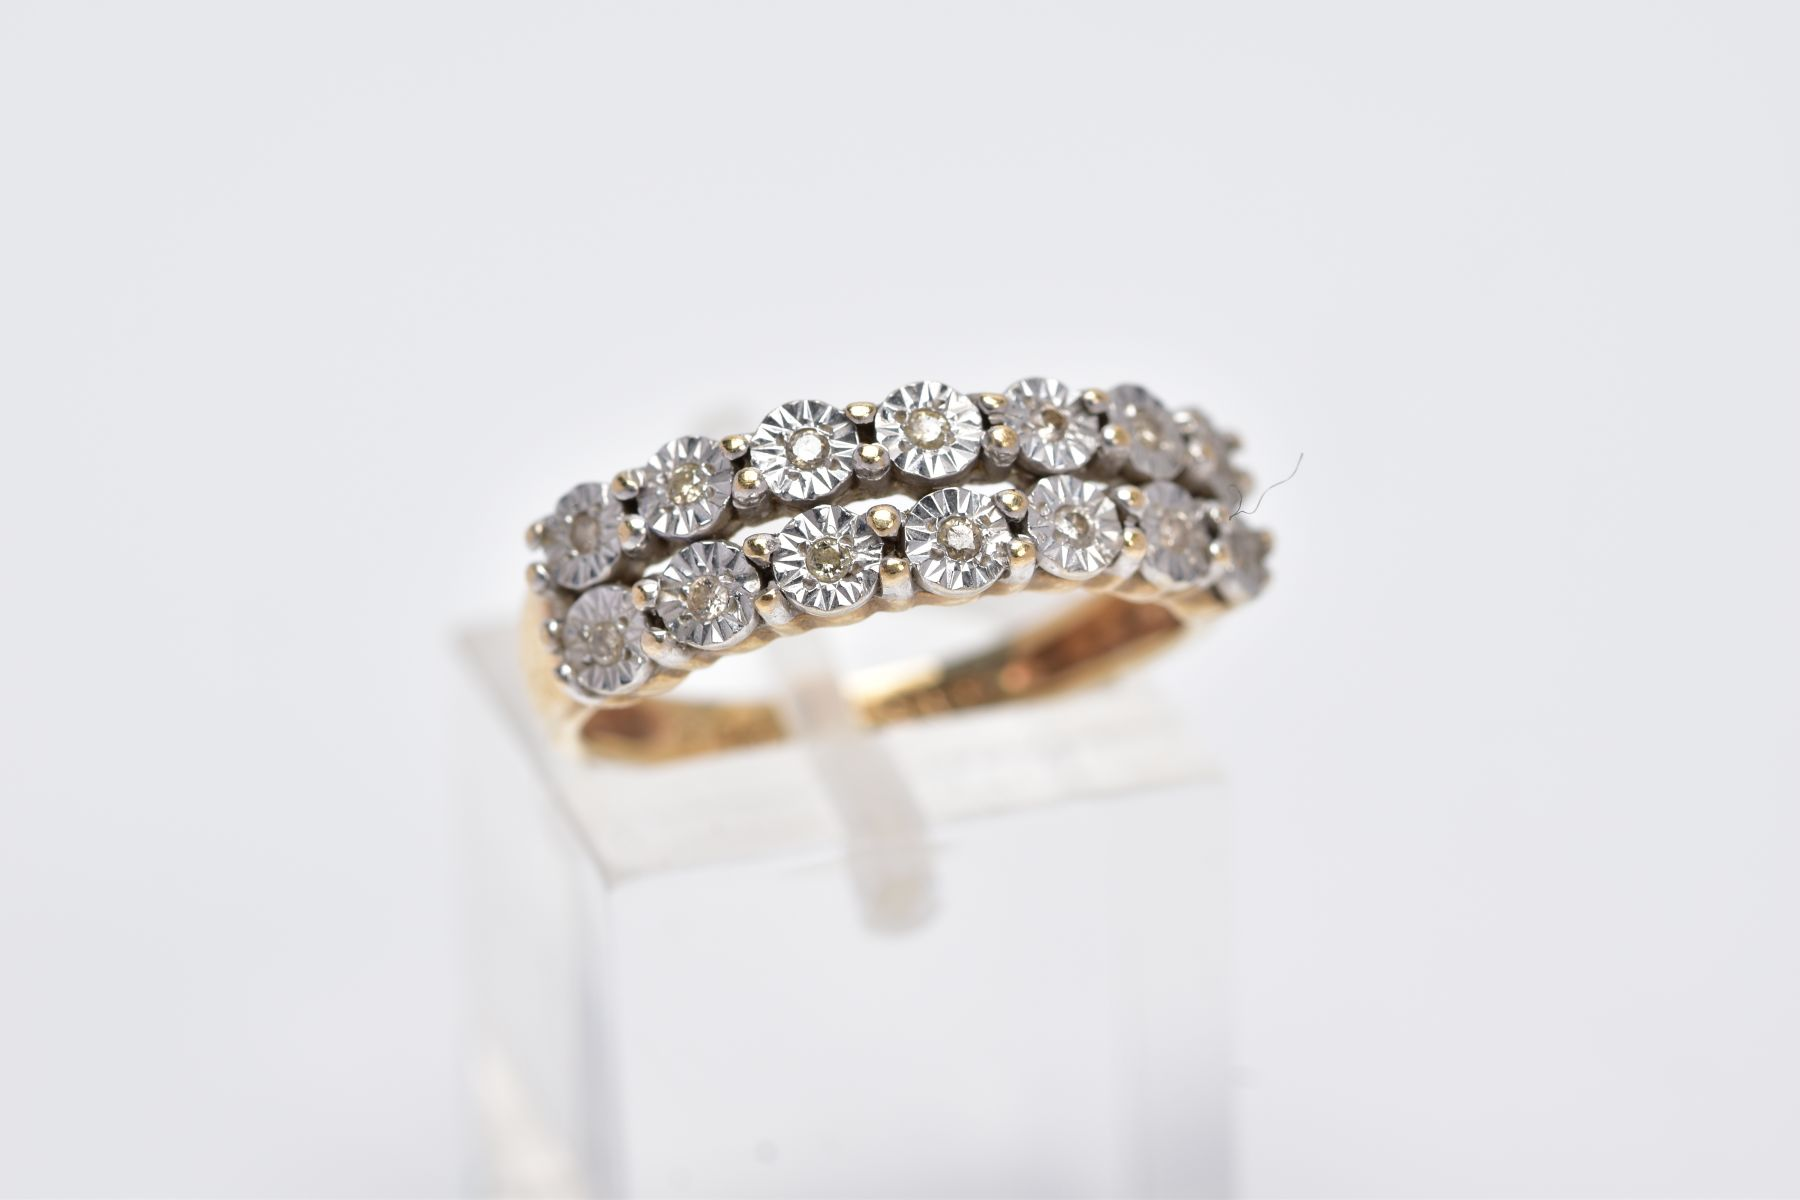 A 9CT GOLD DIAMOND RING, designed with two rows of illusion set, round brilliant cut diamonds, - Image 4 of 4